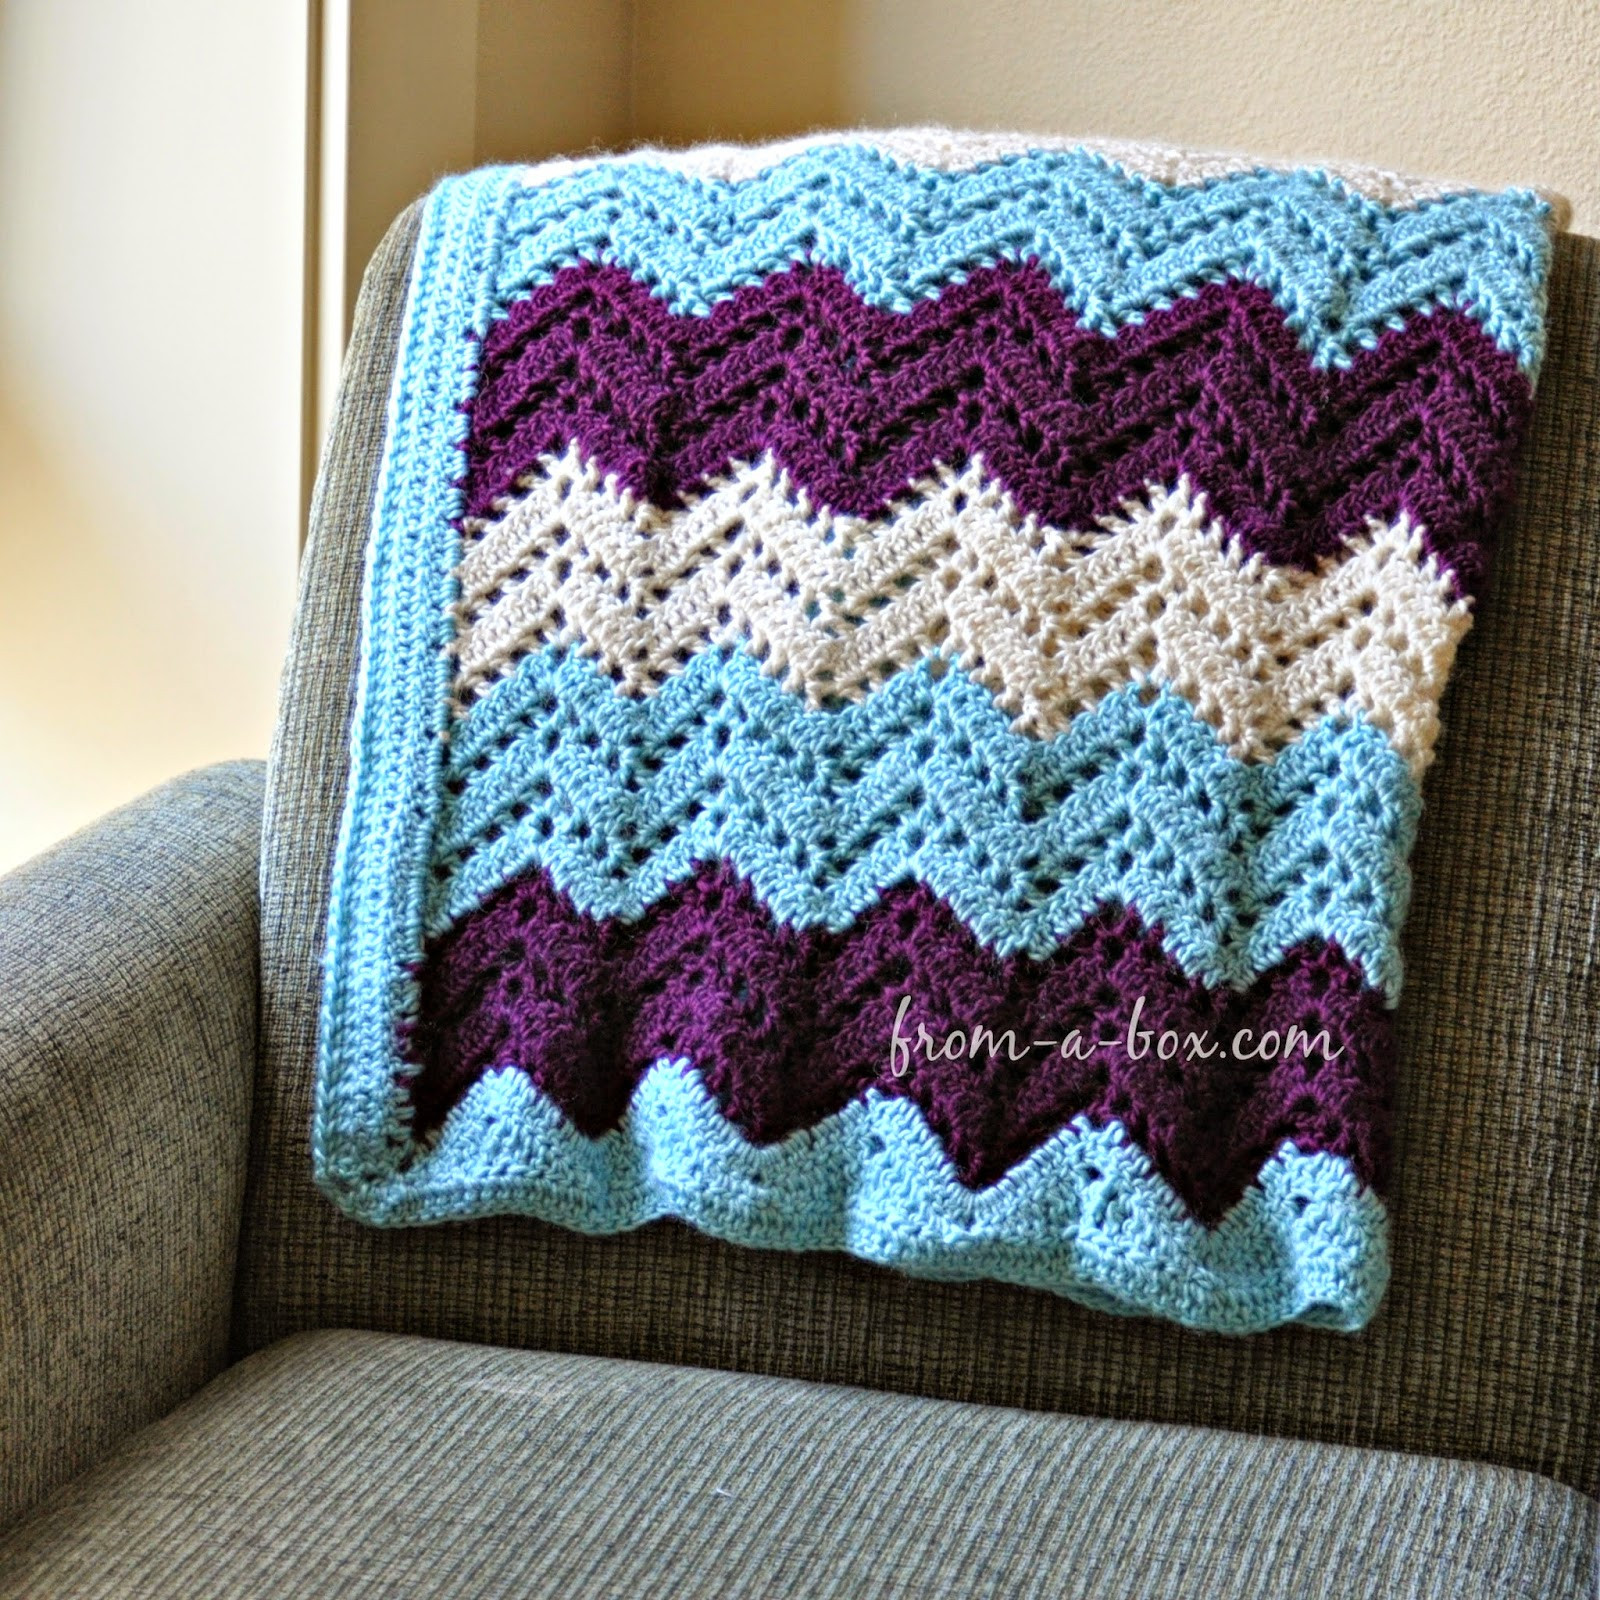 Crochet Throw Patterns Inspirational Ripple Afghan Blanket… Crochet Pattern by Freya Esme Of Brilliant 40 Photos Crochet Throw Patterns